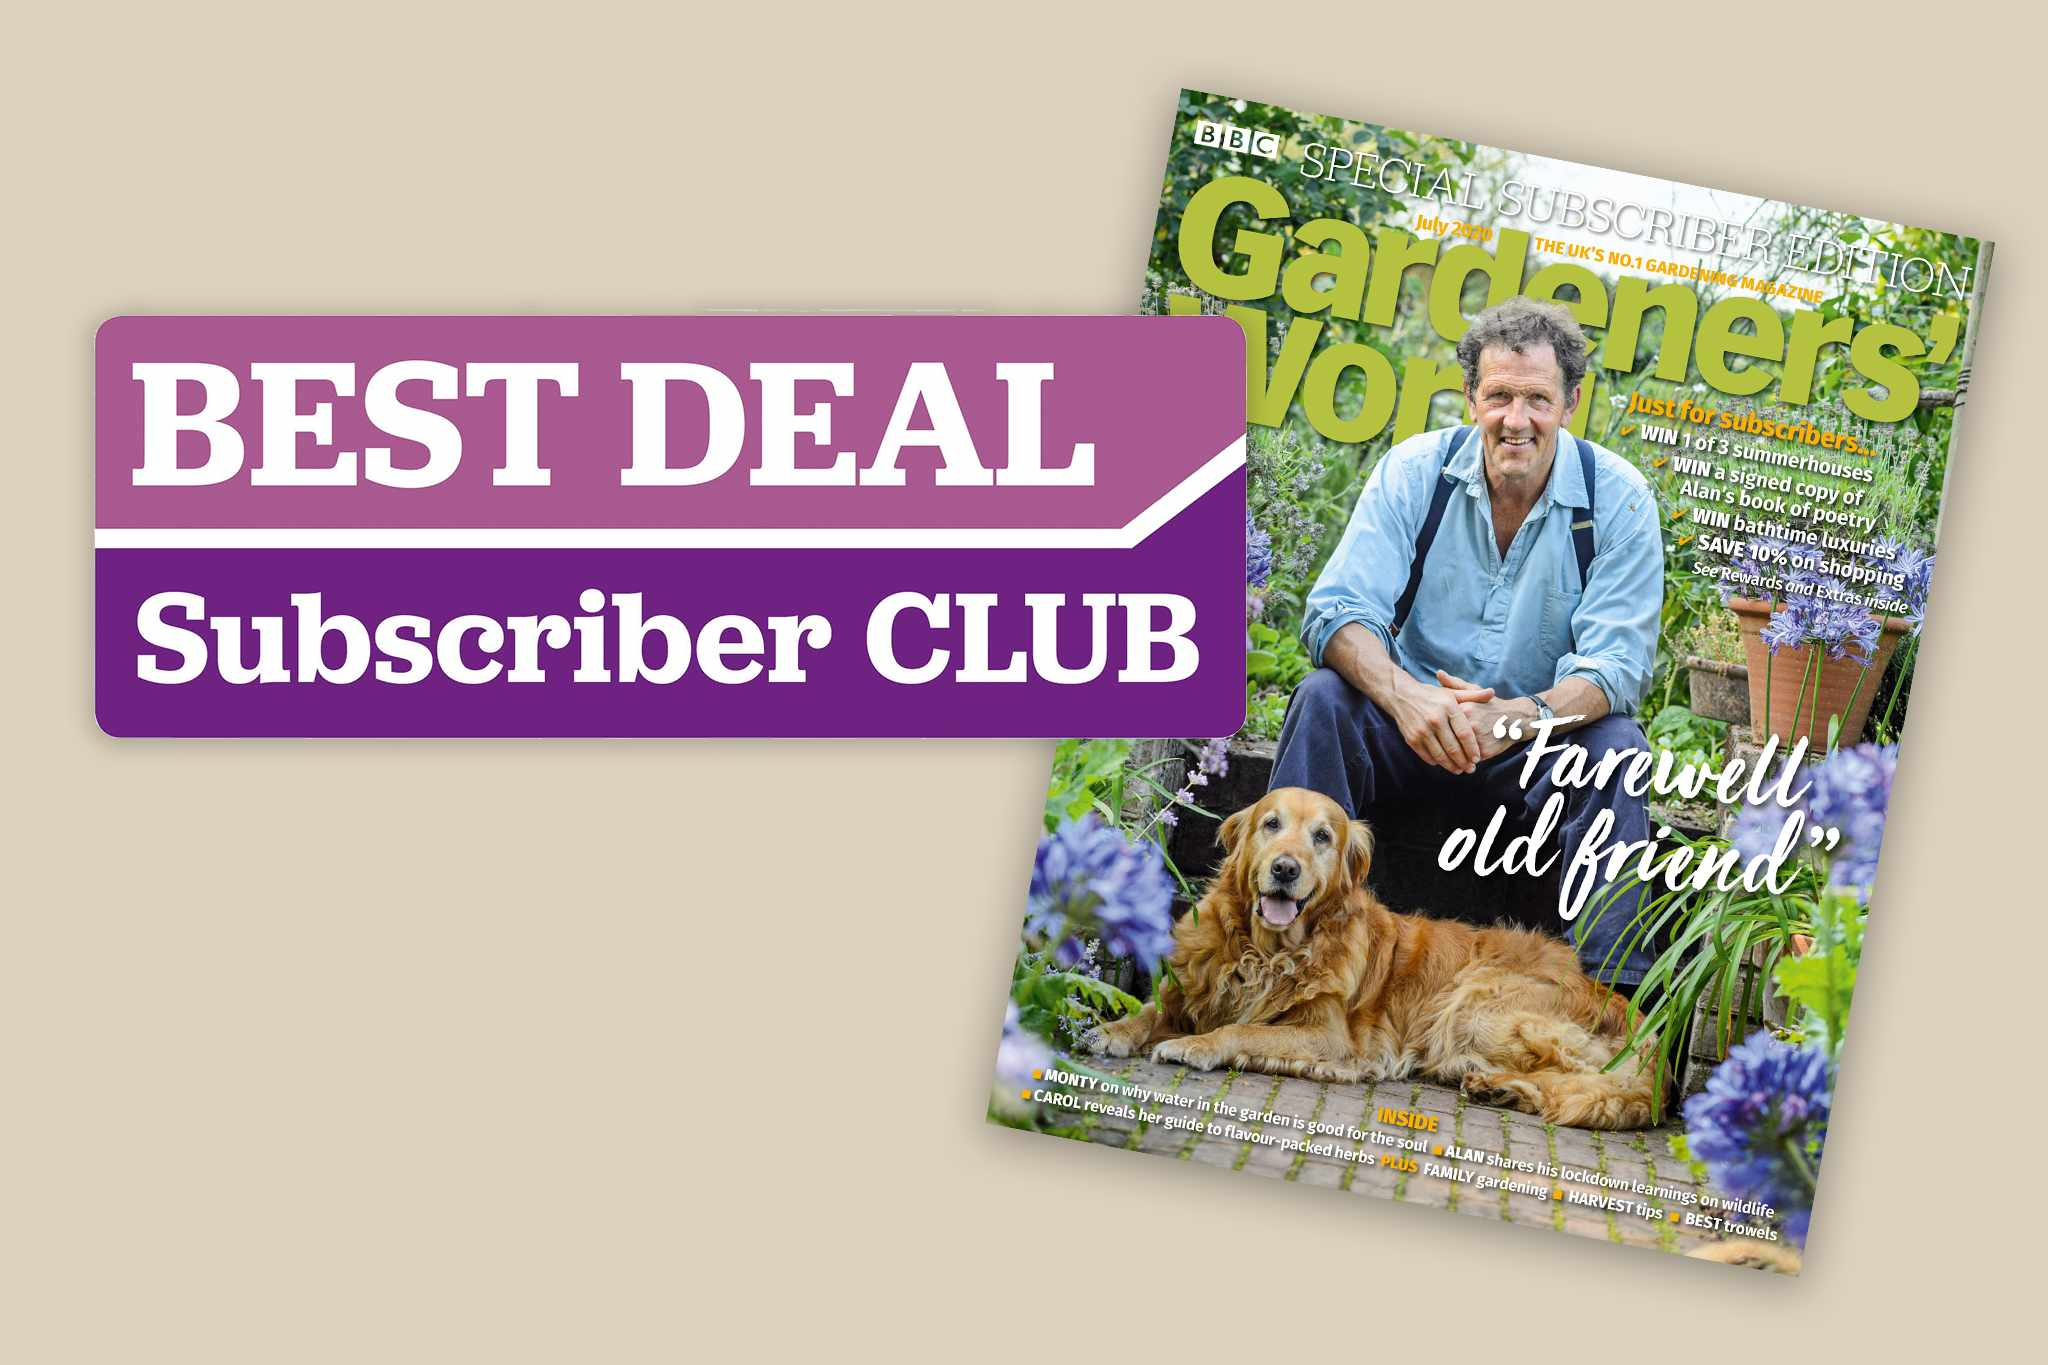 Exclusive Subscriber Club discounts - July issue subscriber cover